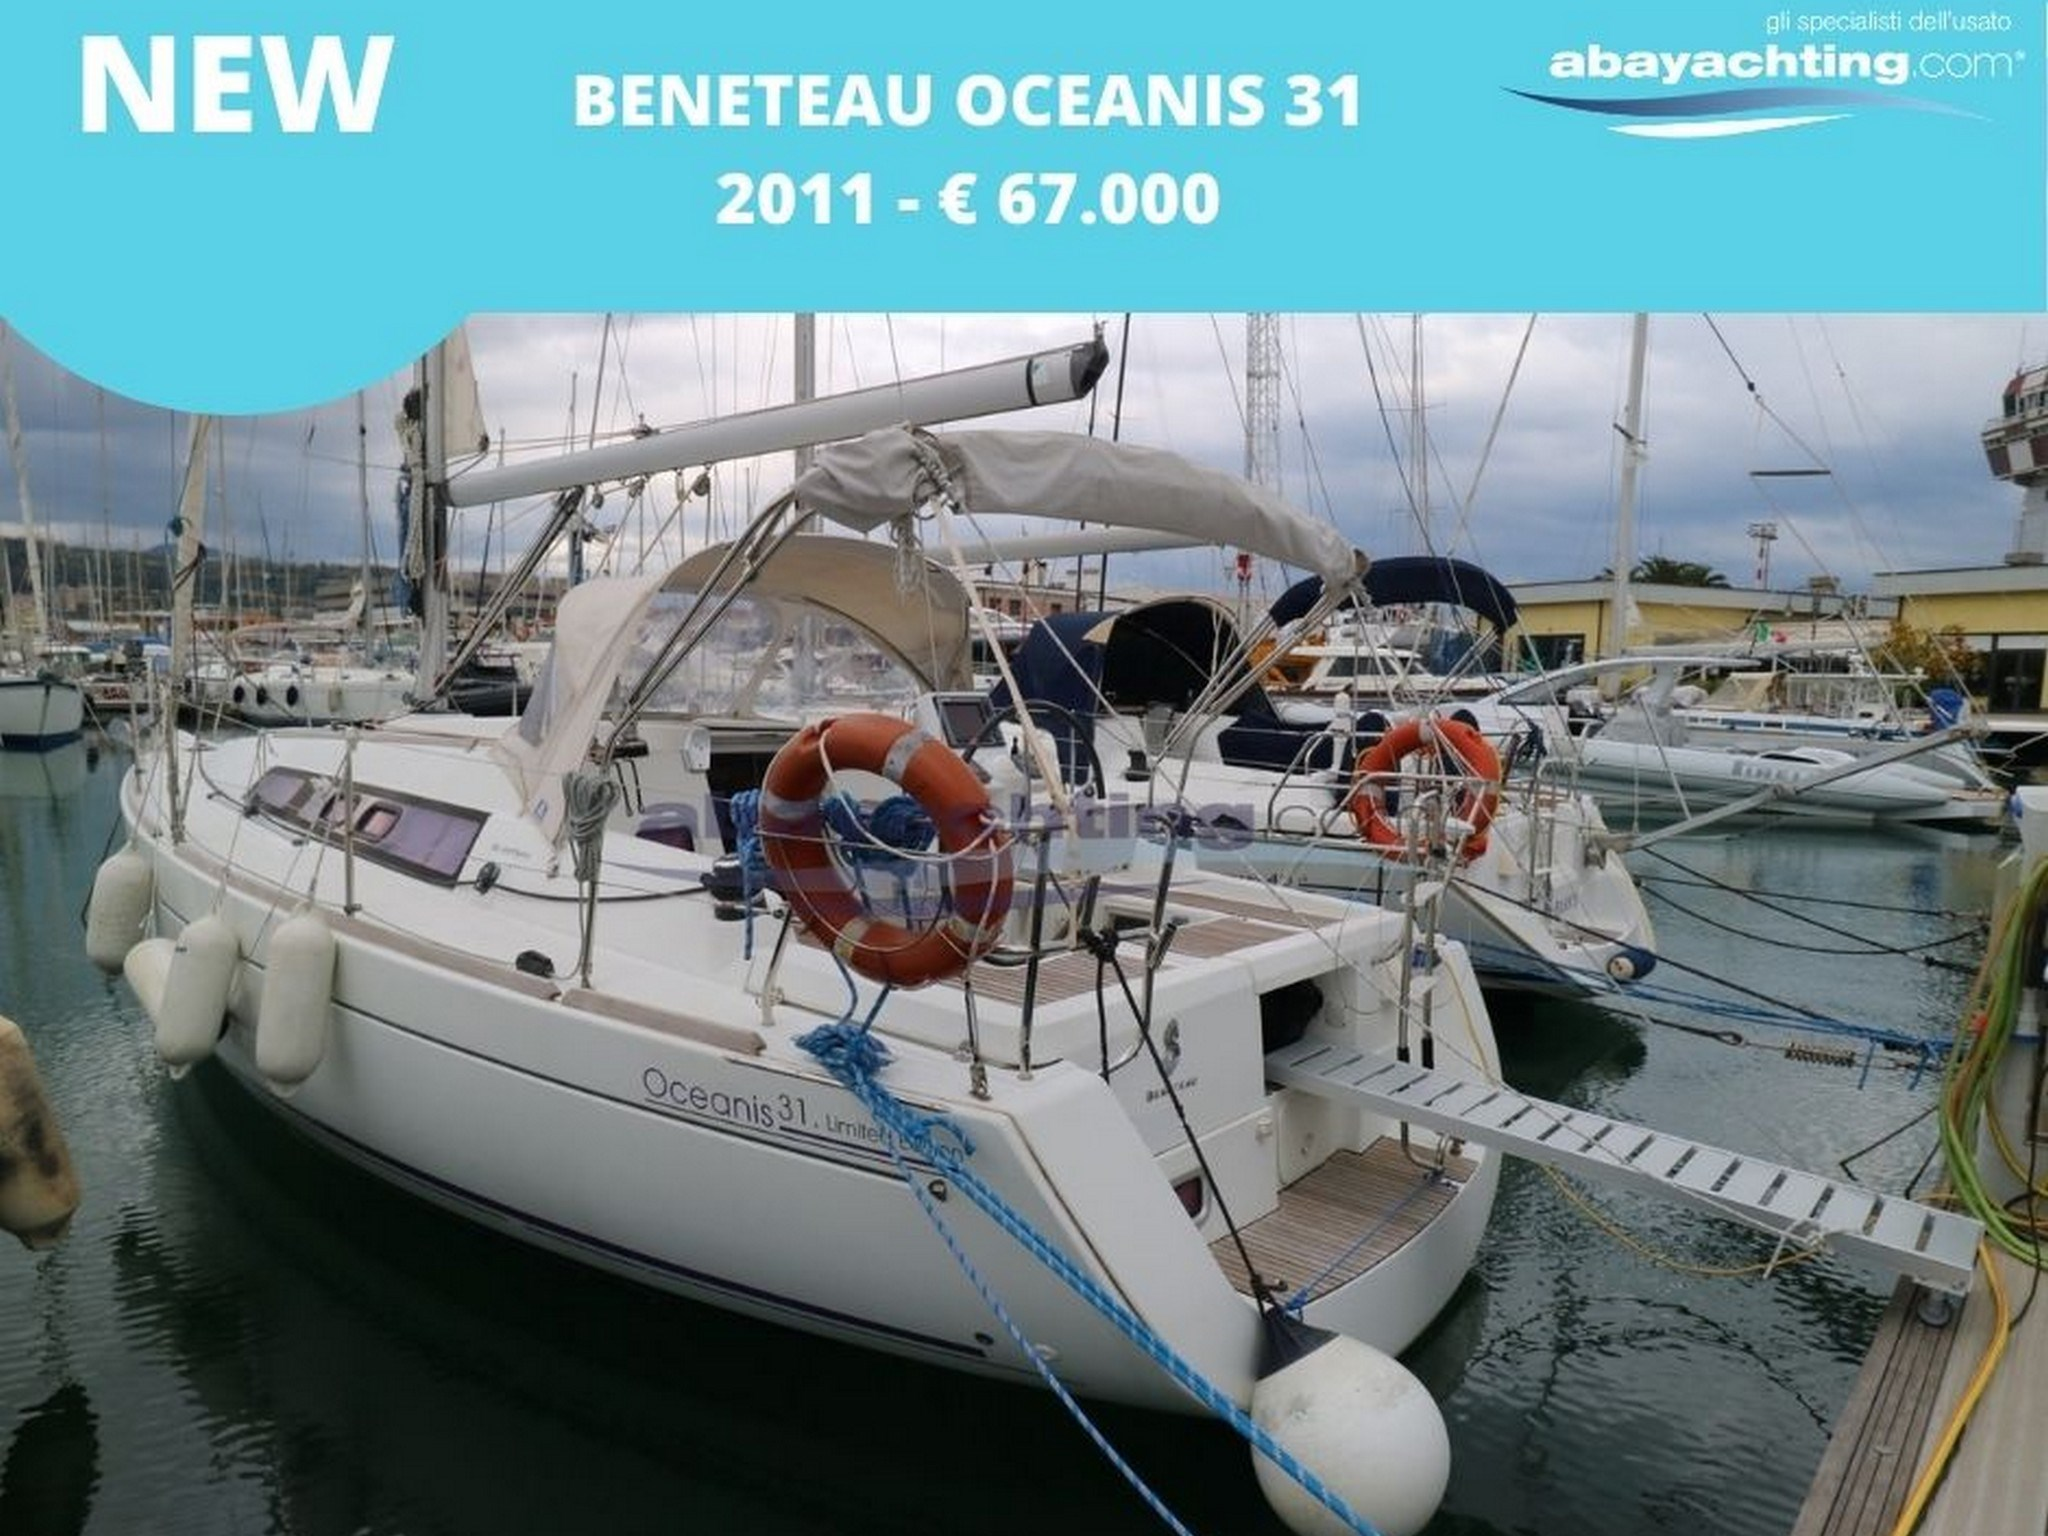 New arrival Beneteau Oceanis 31 Limited Edition